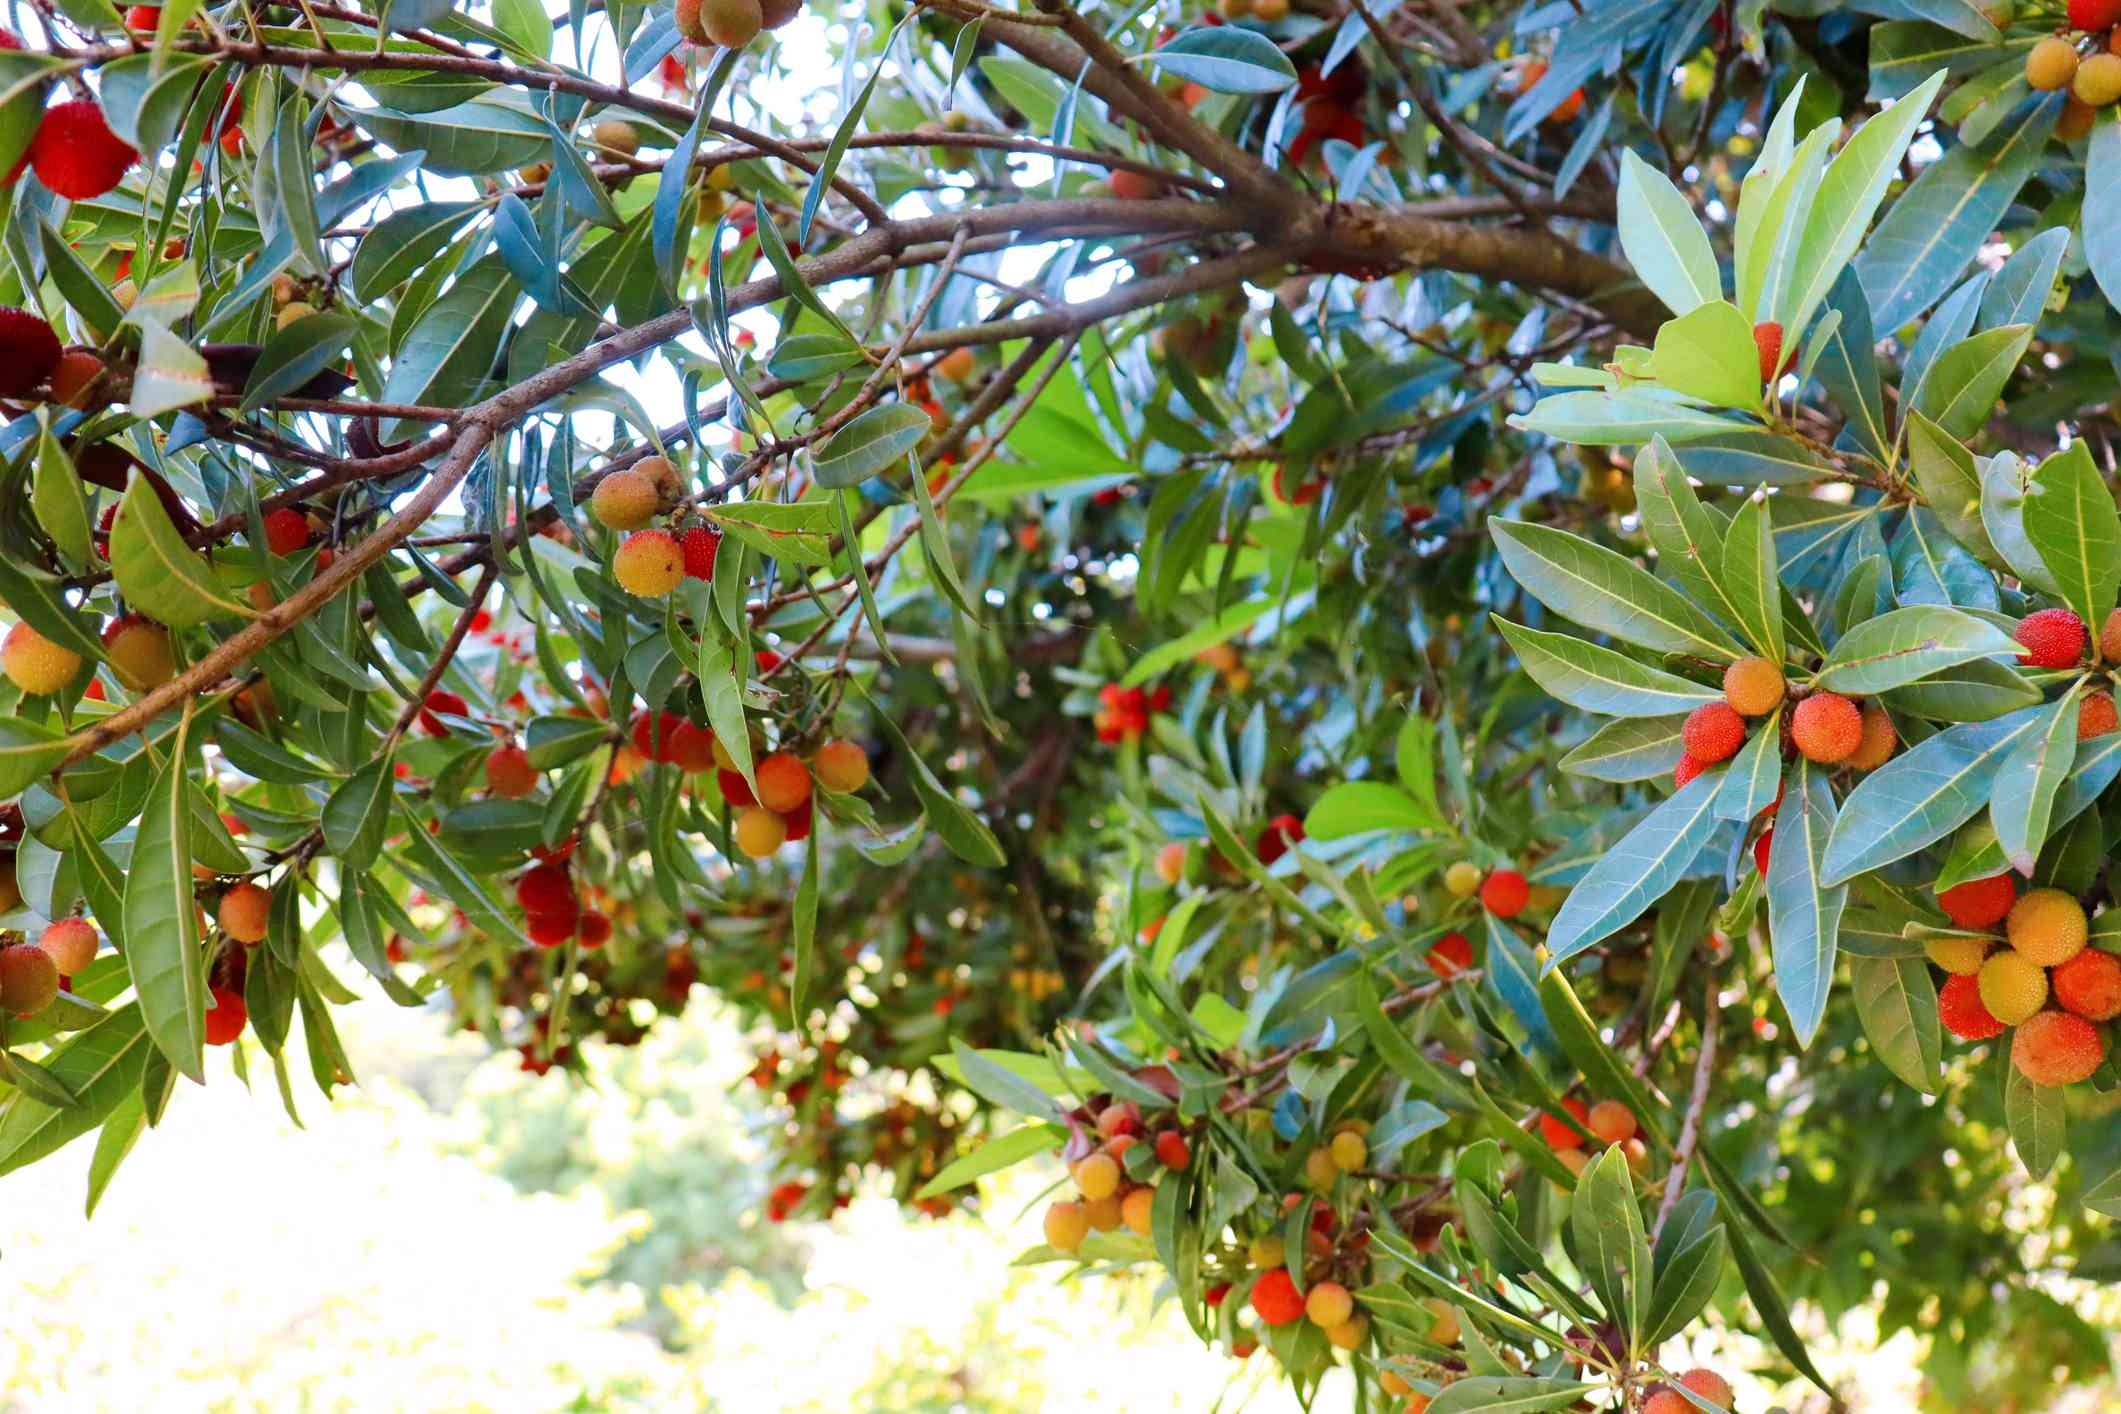 Wax myrtle with red and yellow fruits